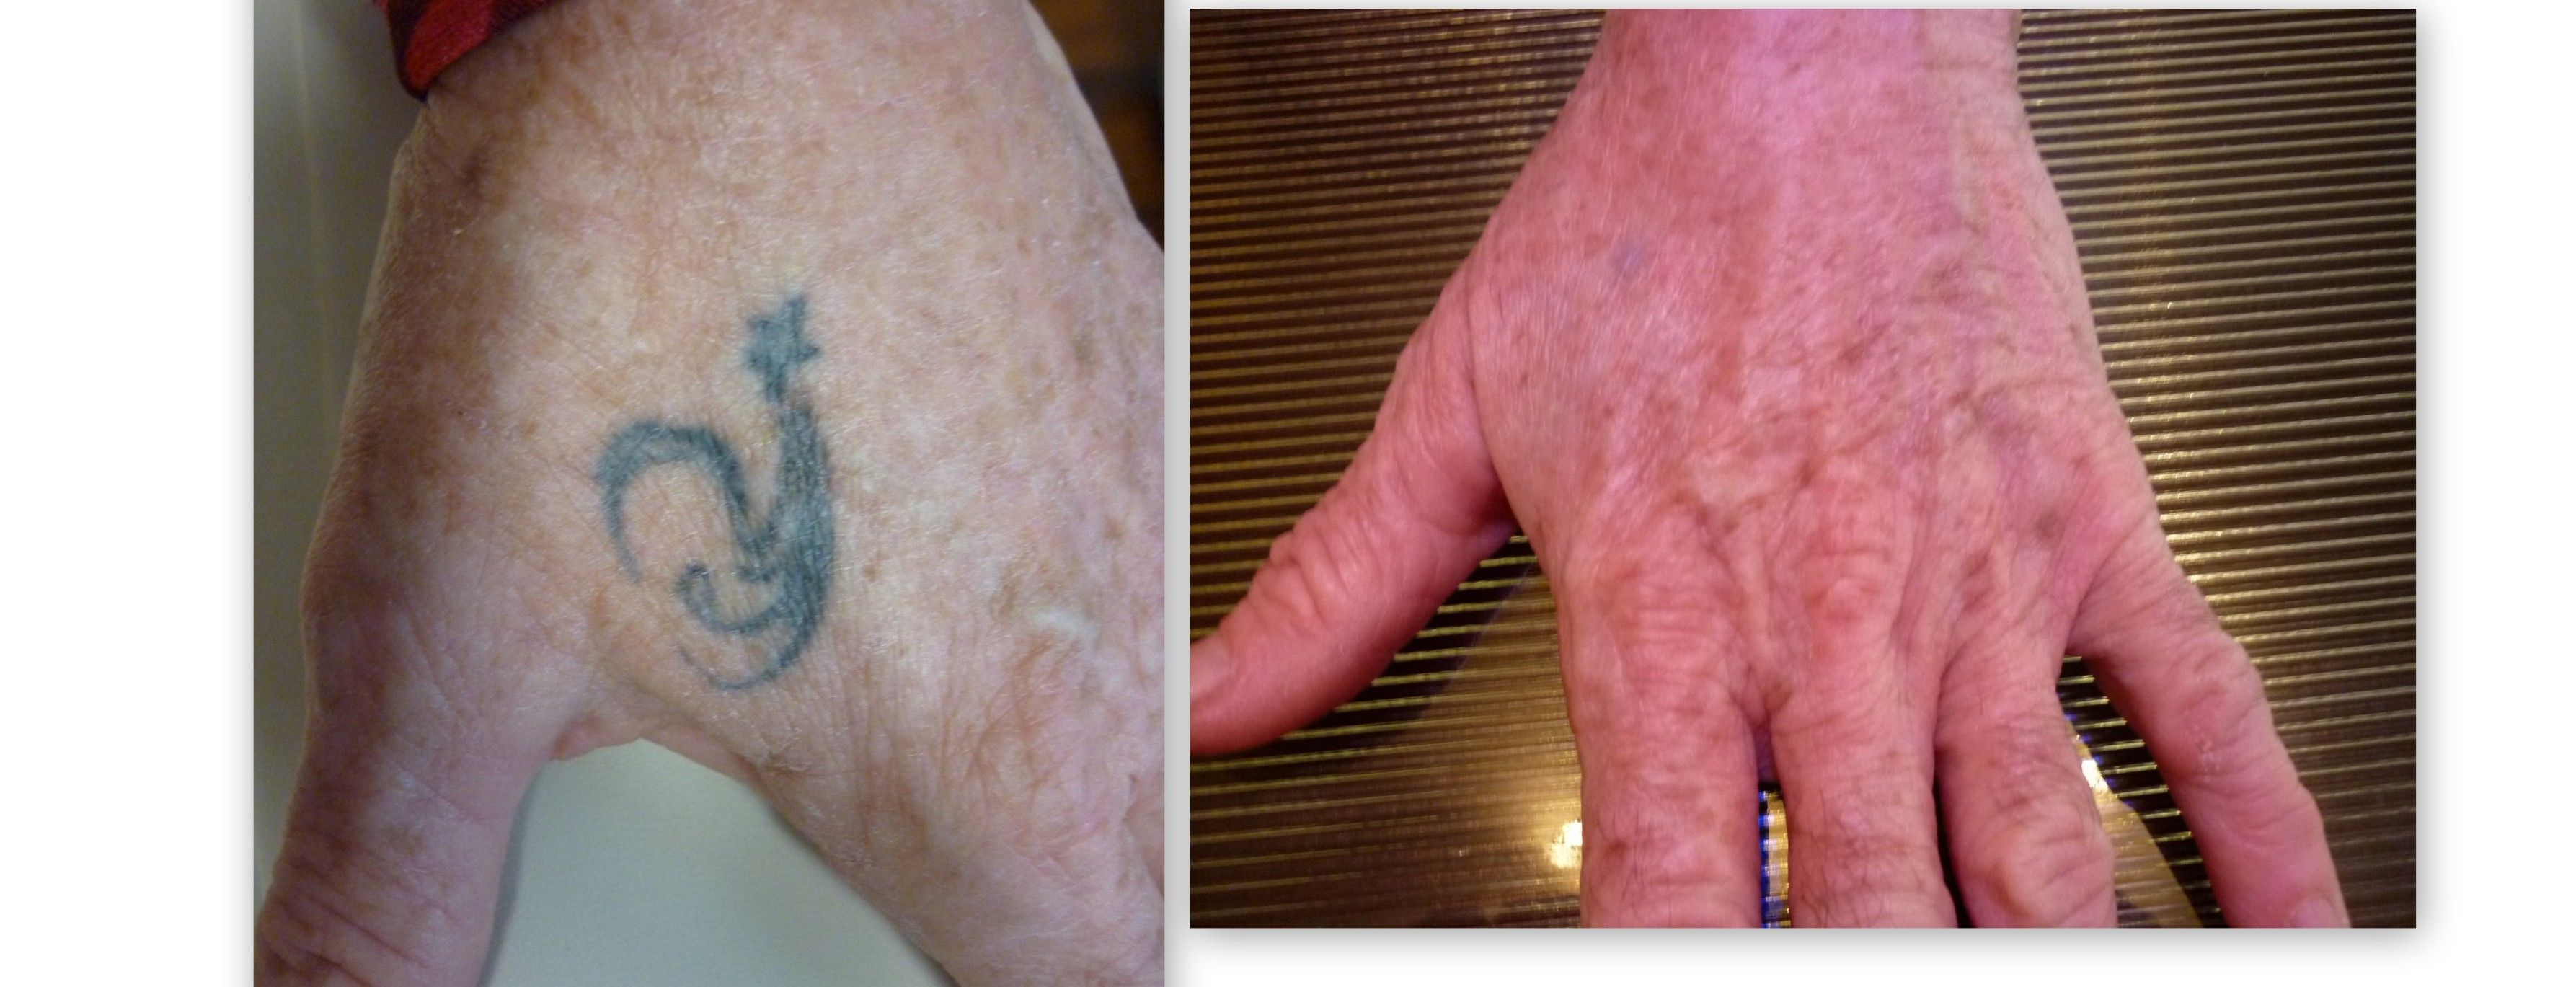 Lincoln Park Aesthetics Tattoo Removal